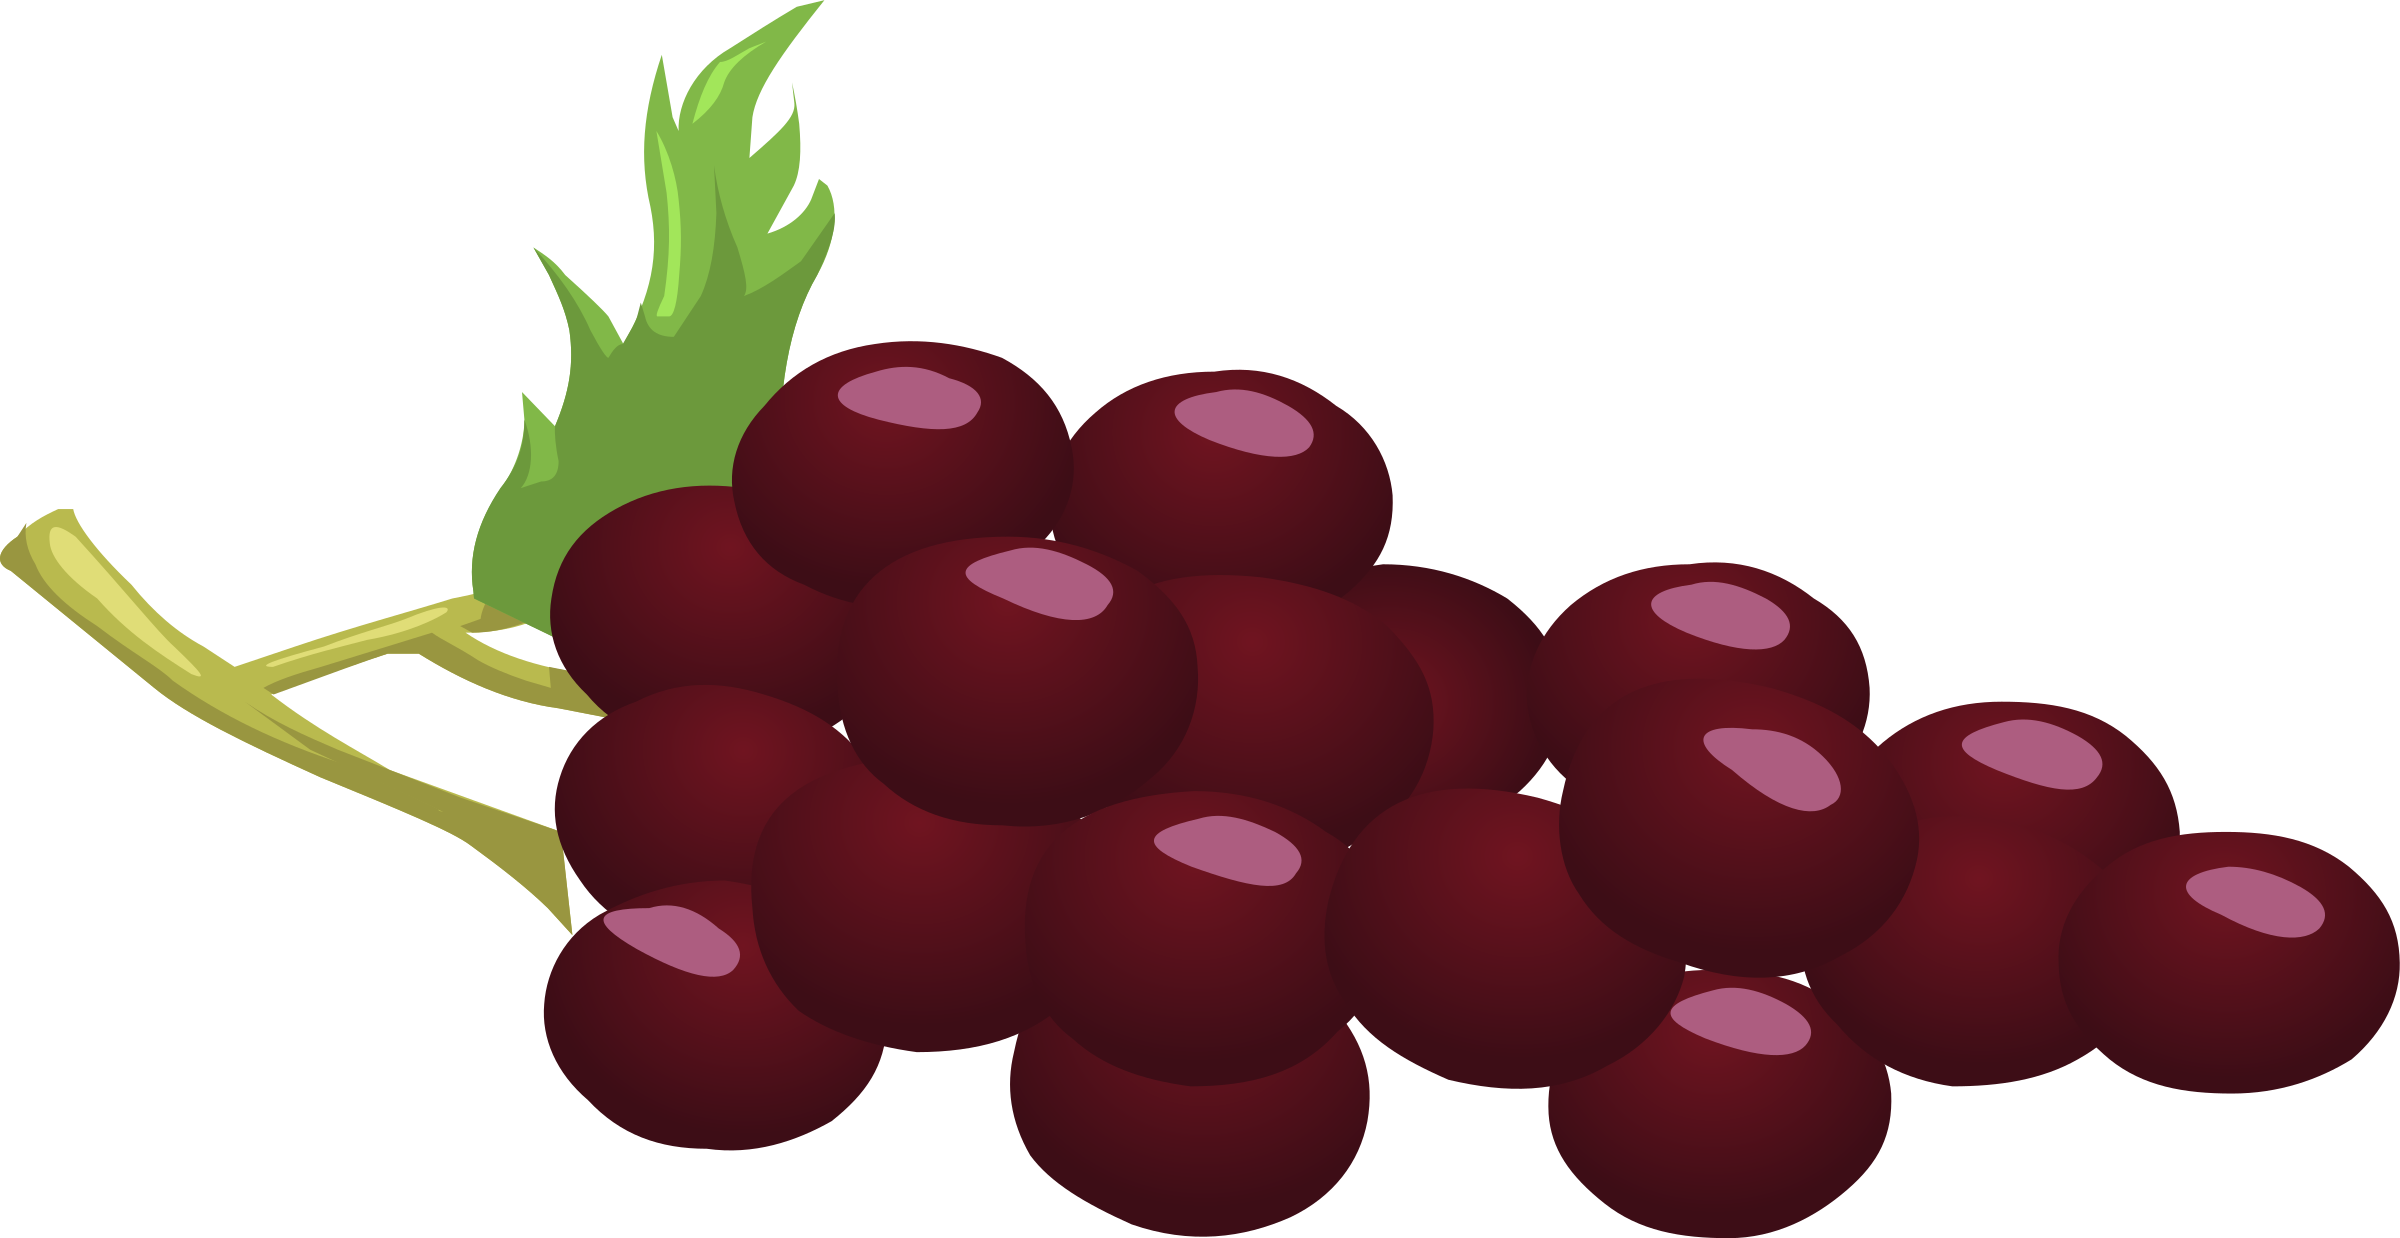 Grapes by anarres